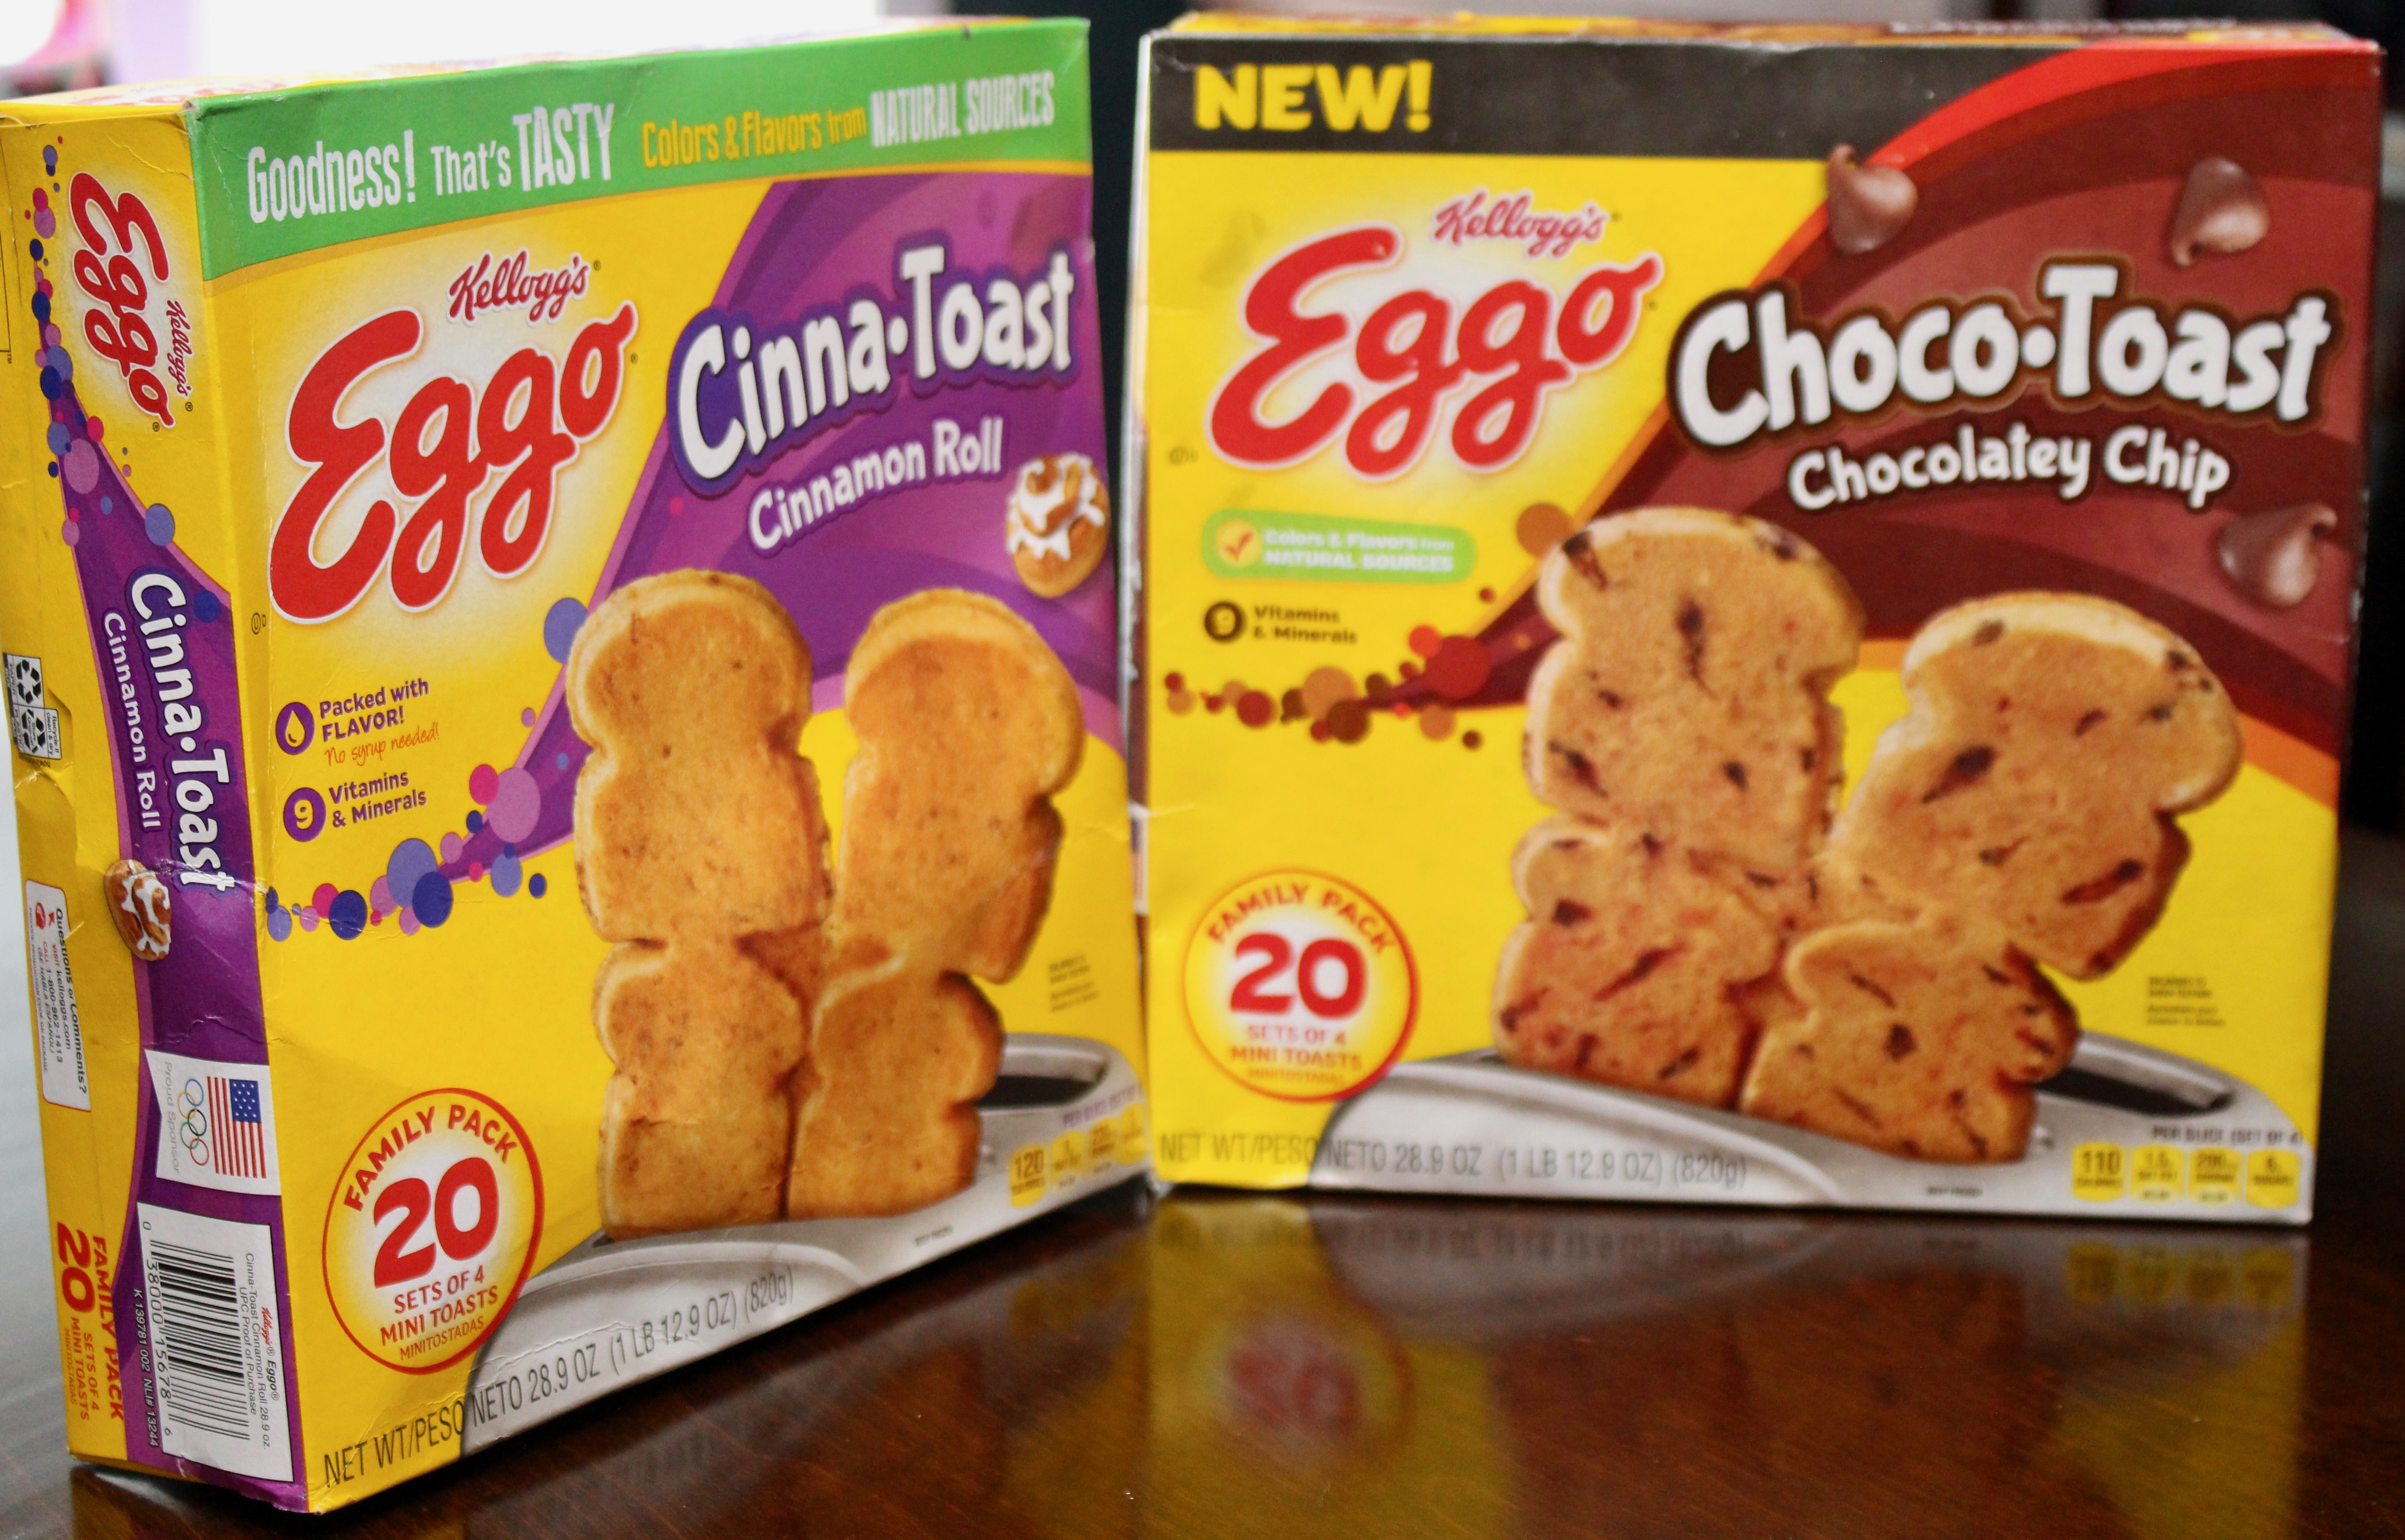 Eggo Cinna-Toast and Eggo Choco-Toast